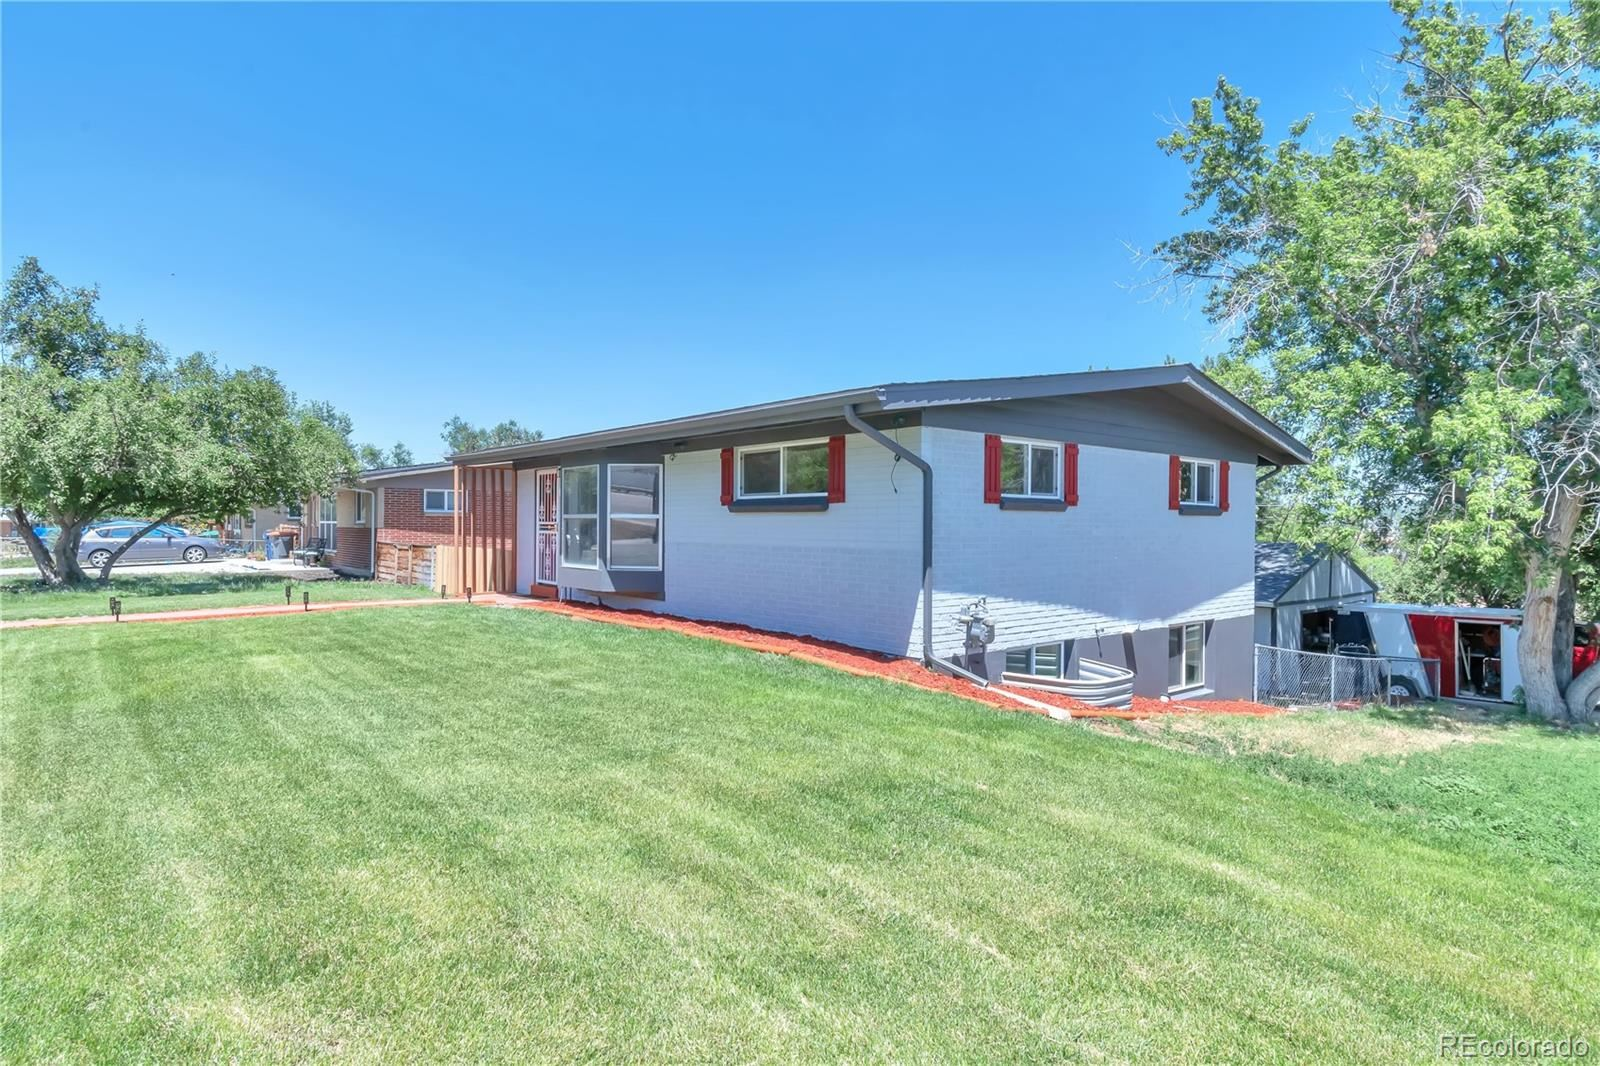 9605 W 56th Place, Arvada, CO 80002 - MLS#: 5741612